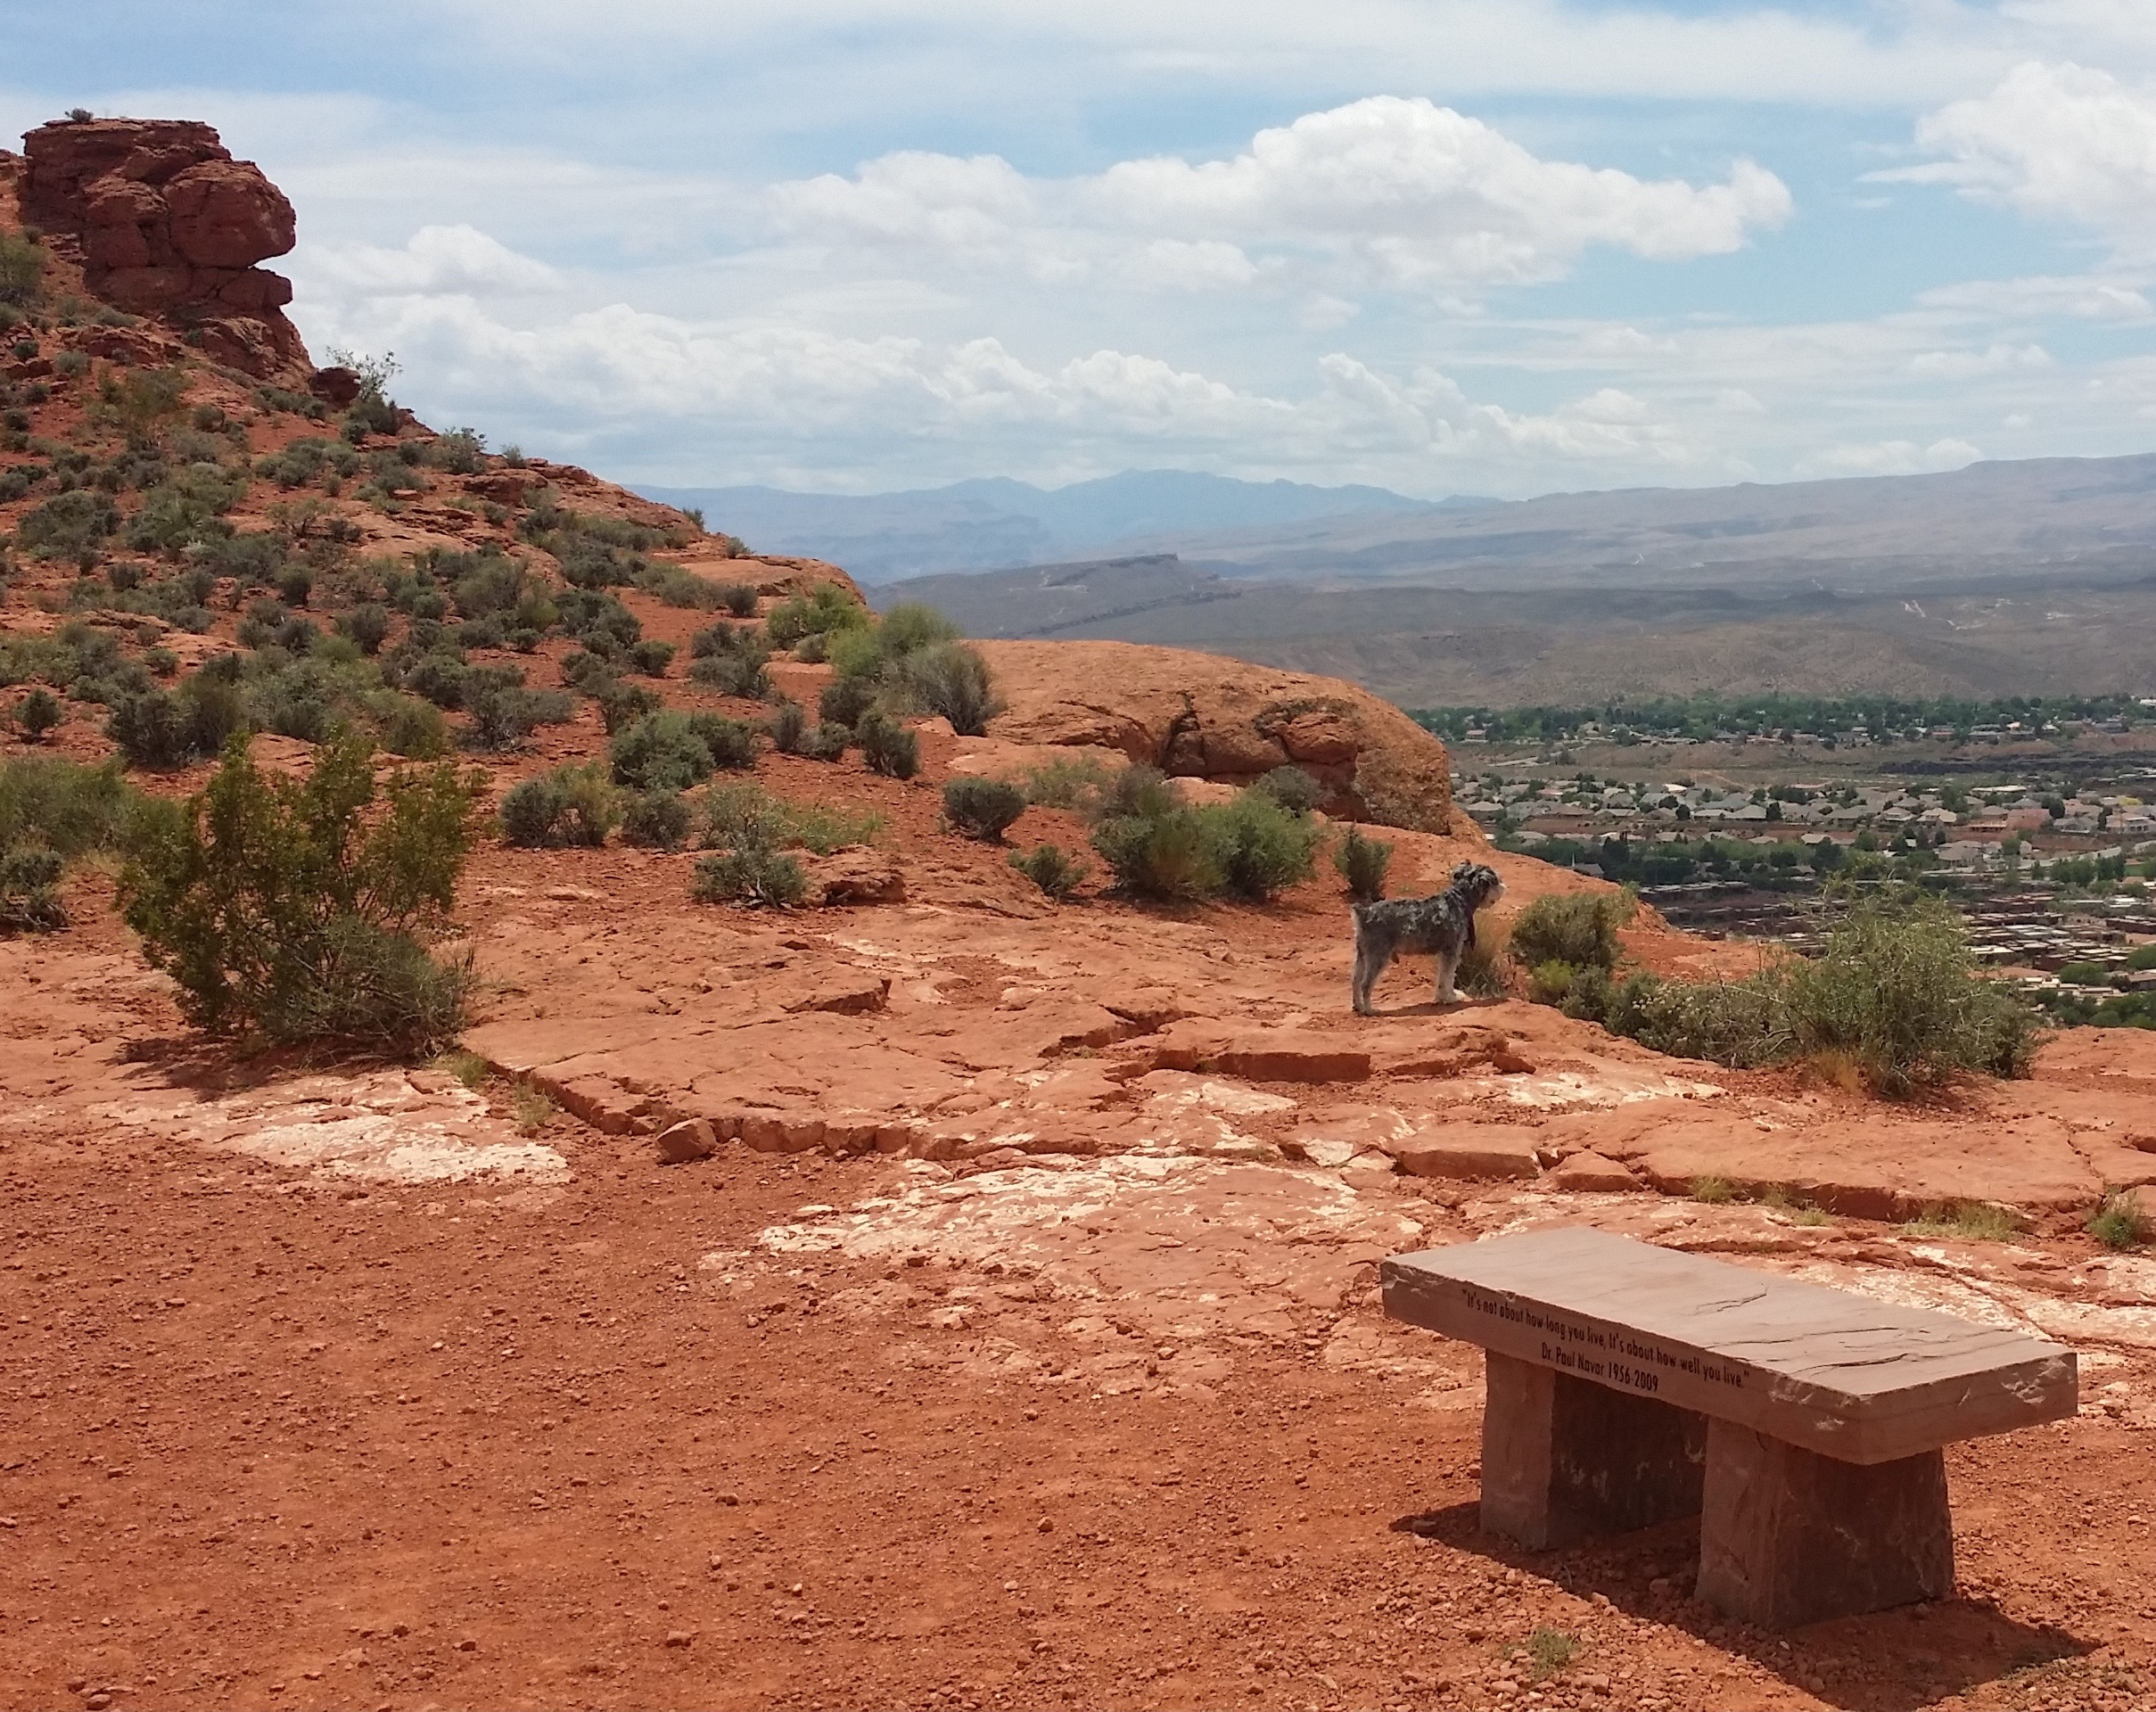 "Bench in memorial to Dr. Paul Navar on Paradise Rim, where he died of a heart attack, inscribed with one of his life-mottos: ""It's about how long you live, it's about how well you live."" St. George, Utah, May 22, 2015 